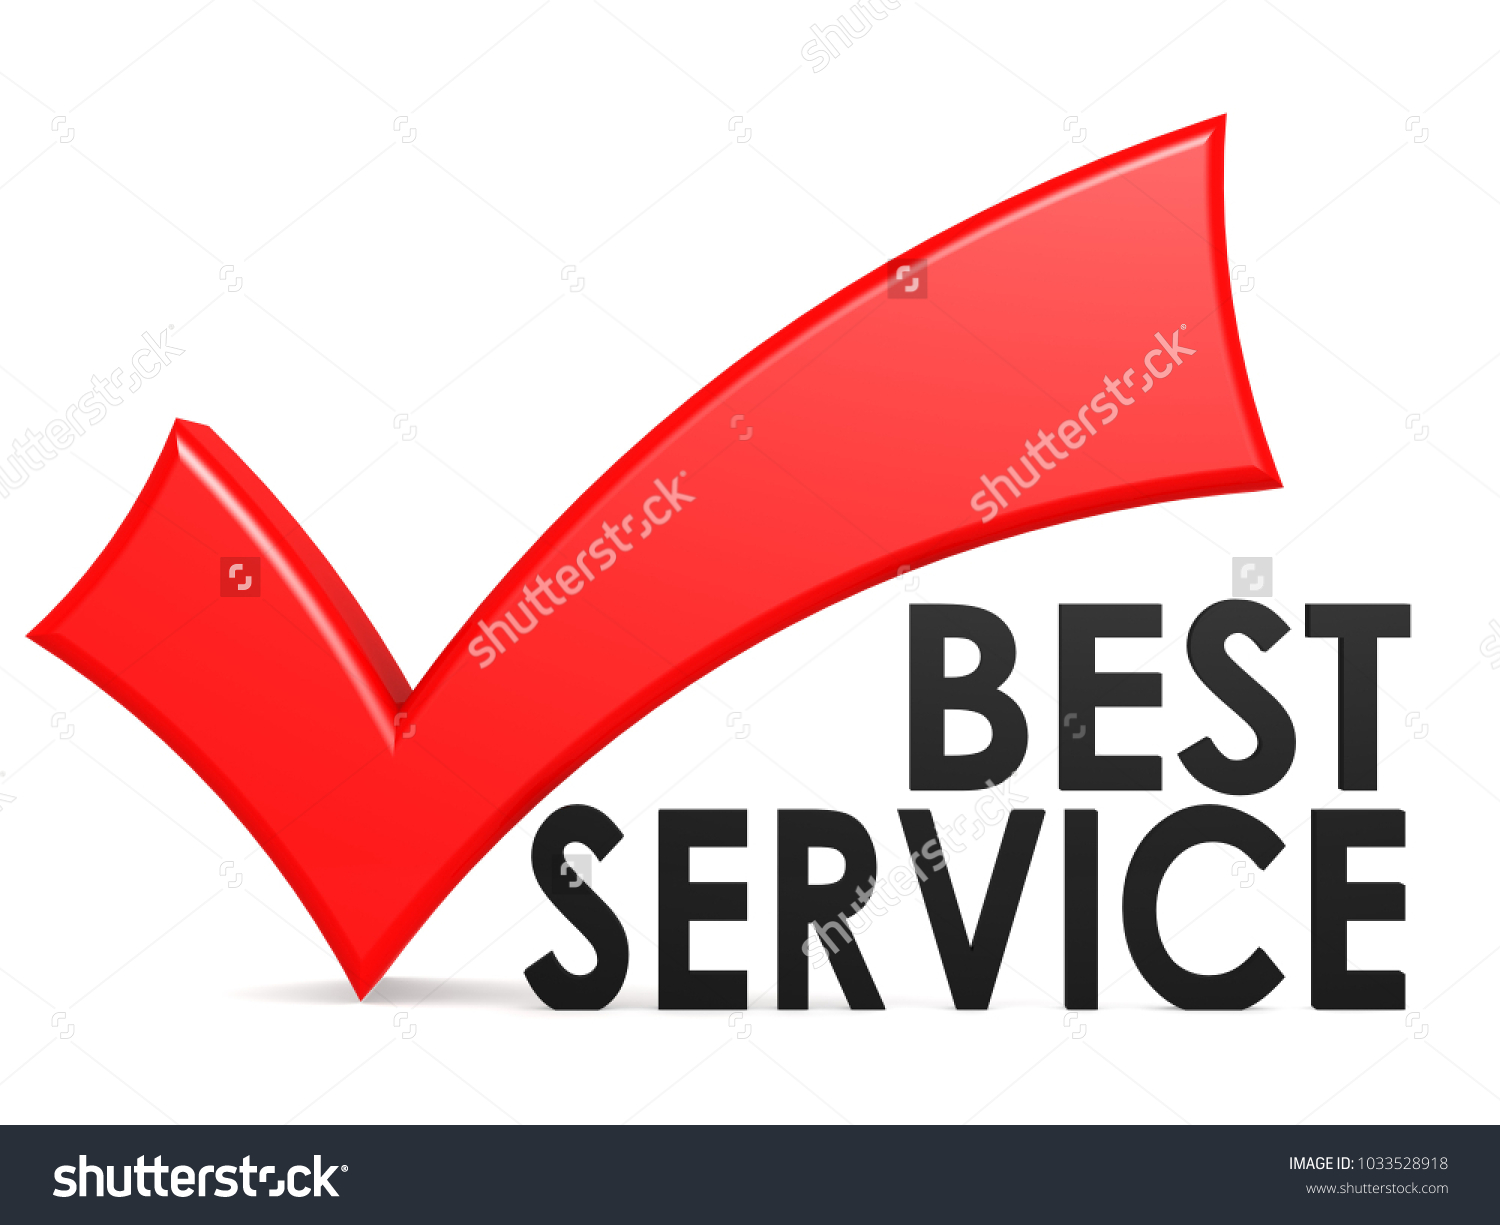 Best service word red check mark stock illustration 1033528918 best service word with red check mark 3d rendering biocorpaavc Images